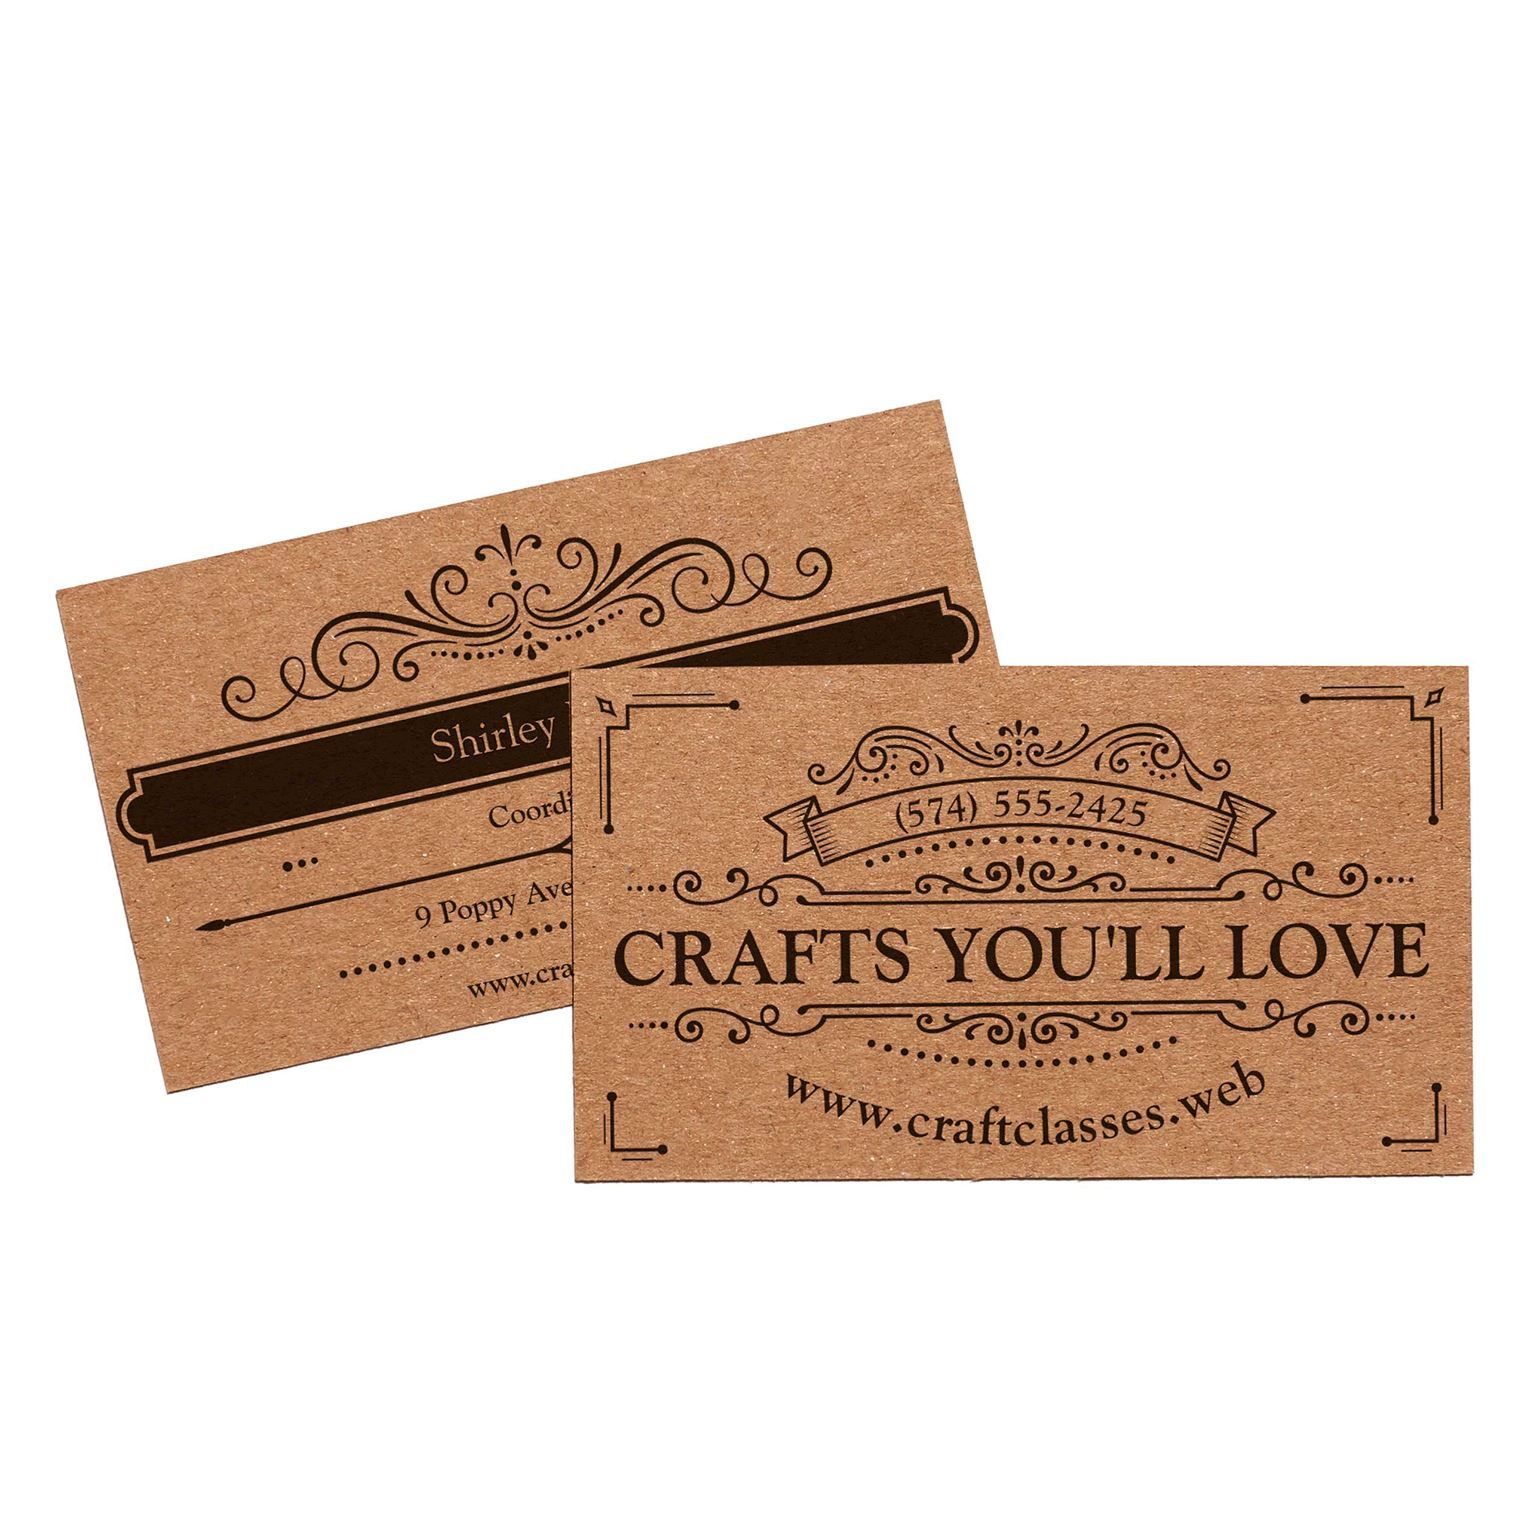 Kraft Paper Business Cards Eco Friendly Cards Vistaprint Kraft Business Cards Recycled Paper Business Cards Vistaprint Business Cards